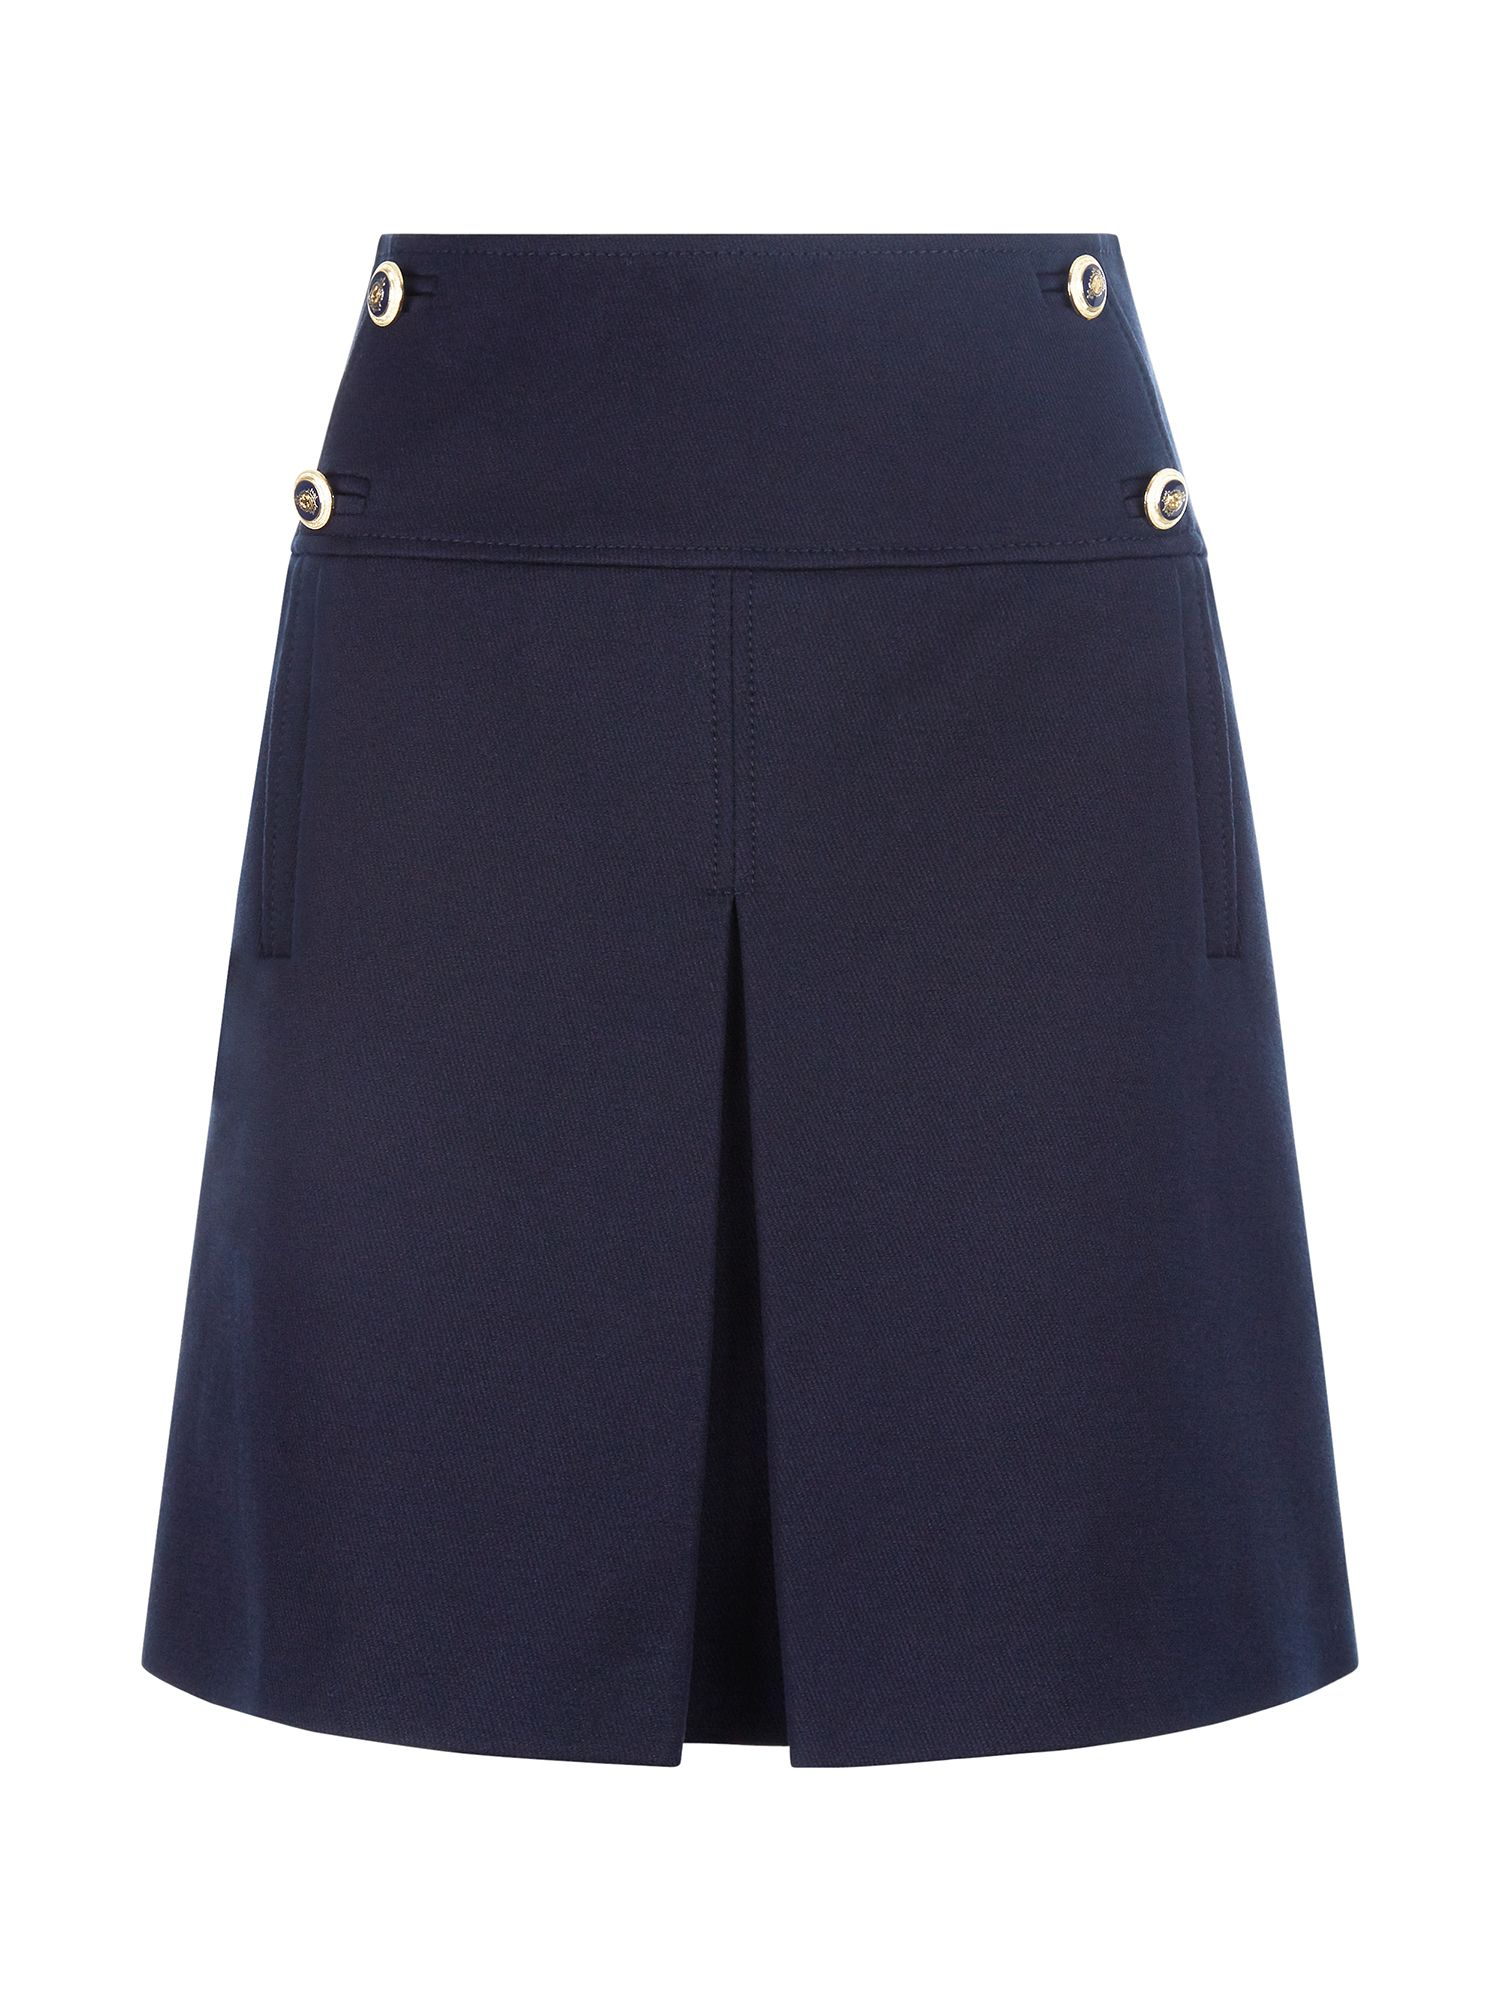 Hobbs Joy Sailor Skirt, Blue